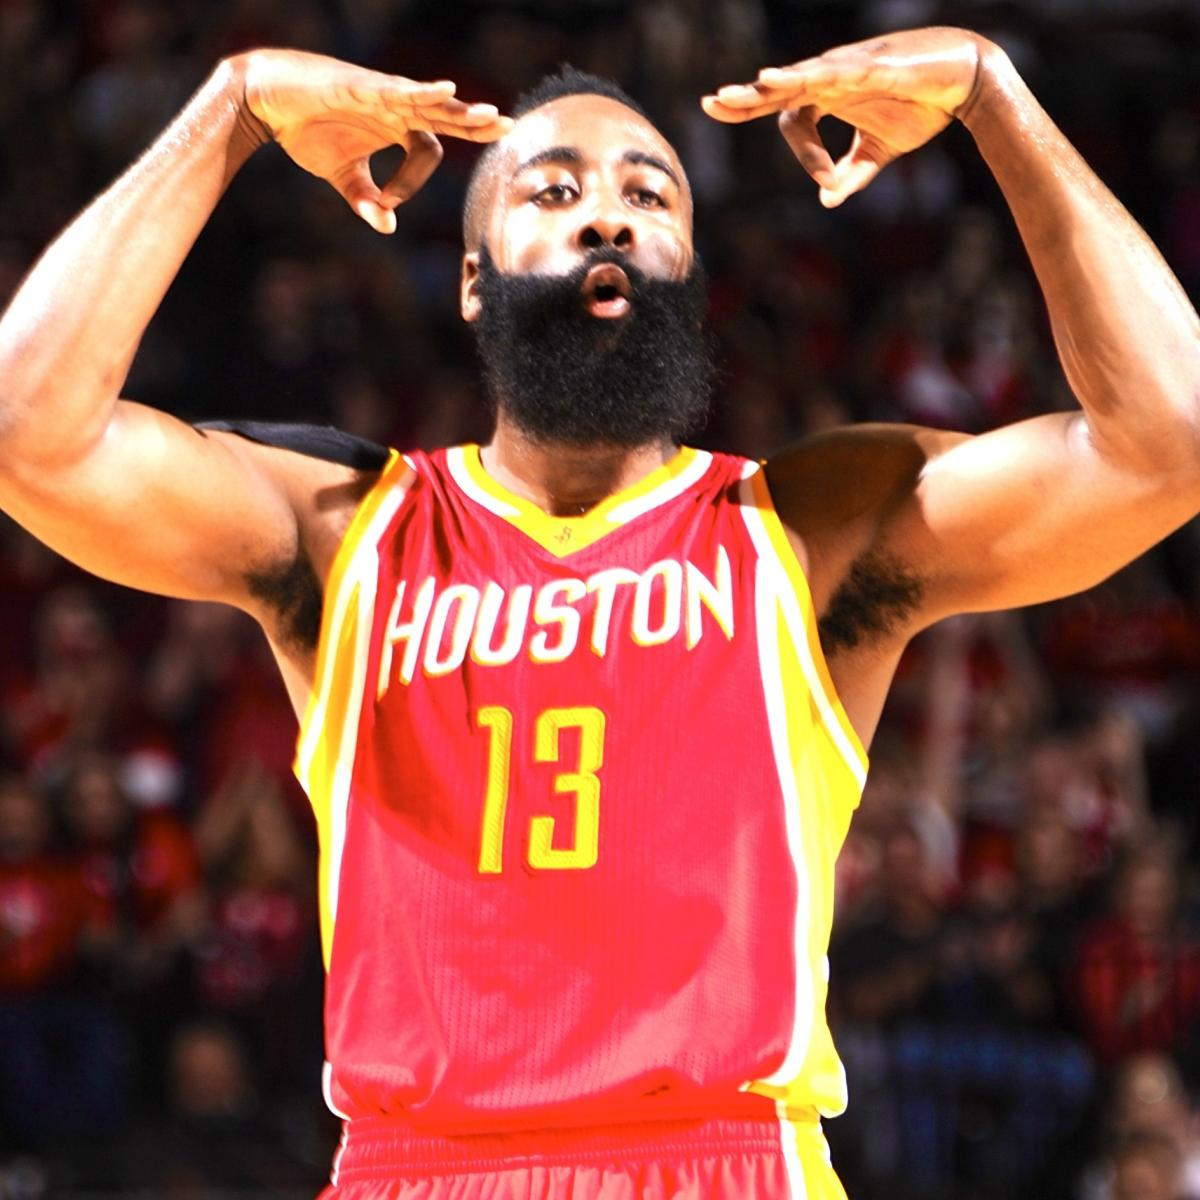 James Harden Quadruple Team: What Else Does James Harden Have To Do To Prove He's NBA's